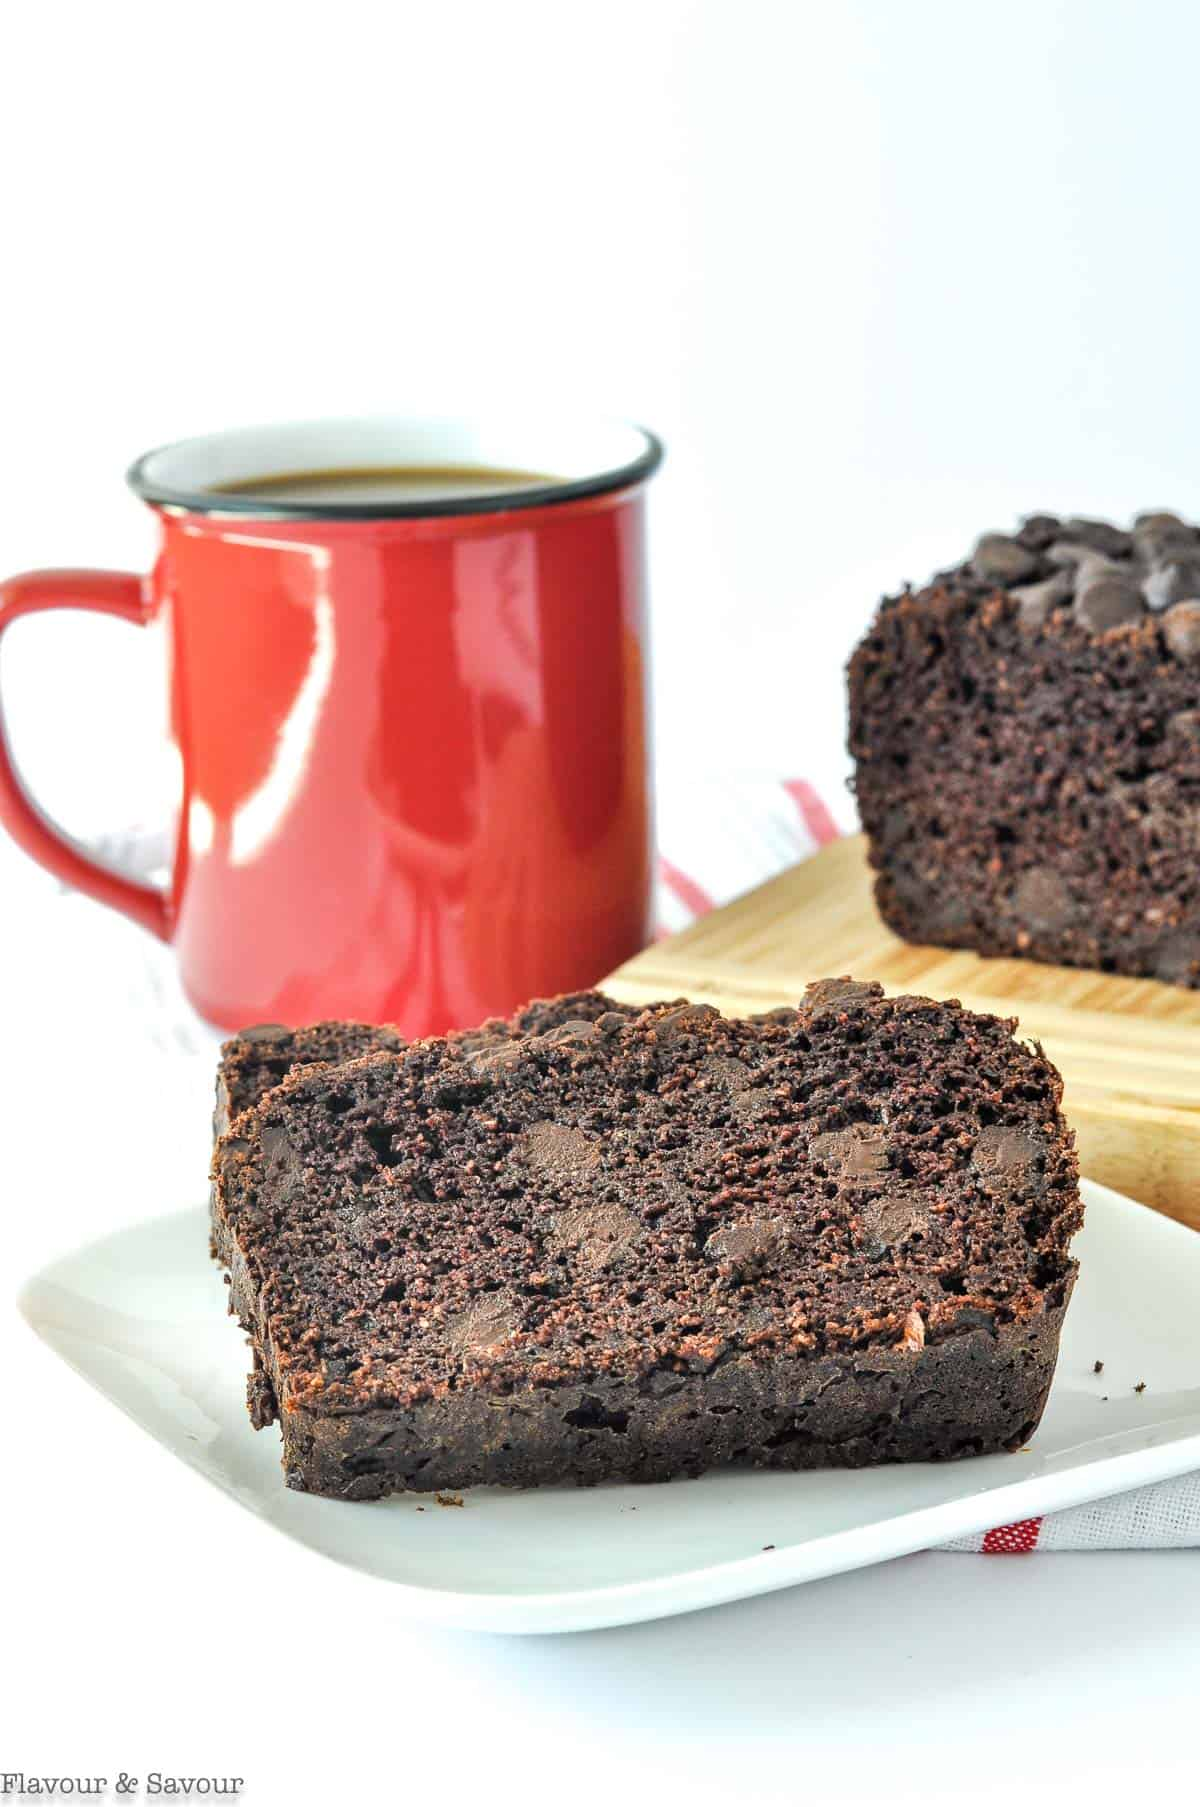 Sliced Grain-Free Double Chocolate Zucchini Bread with a mug of coffee